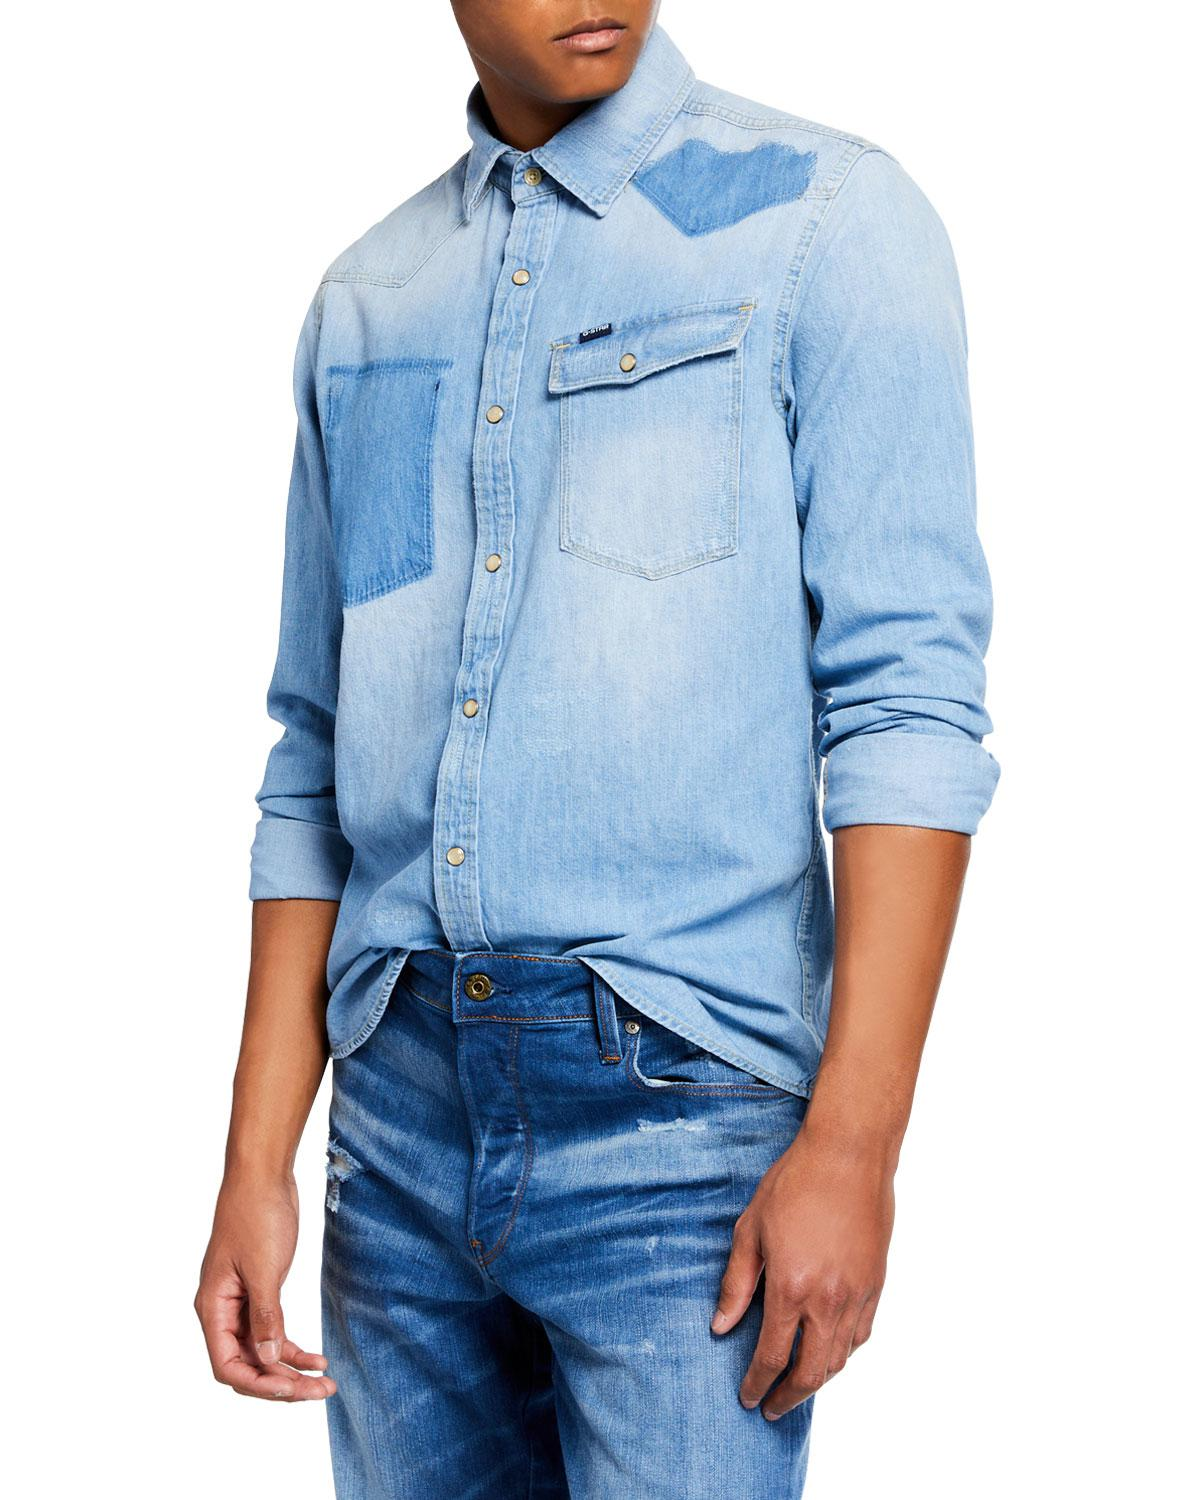 4c1647477f9a85 Lyst - G-Star RAW Men's 3301 Light Vintage Aged Denim Shirt in Blue ...